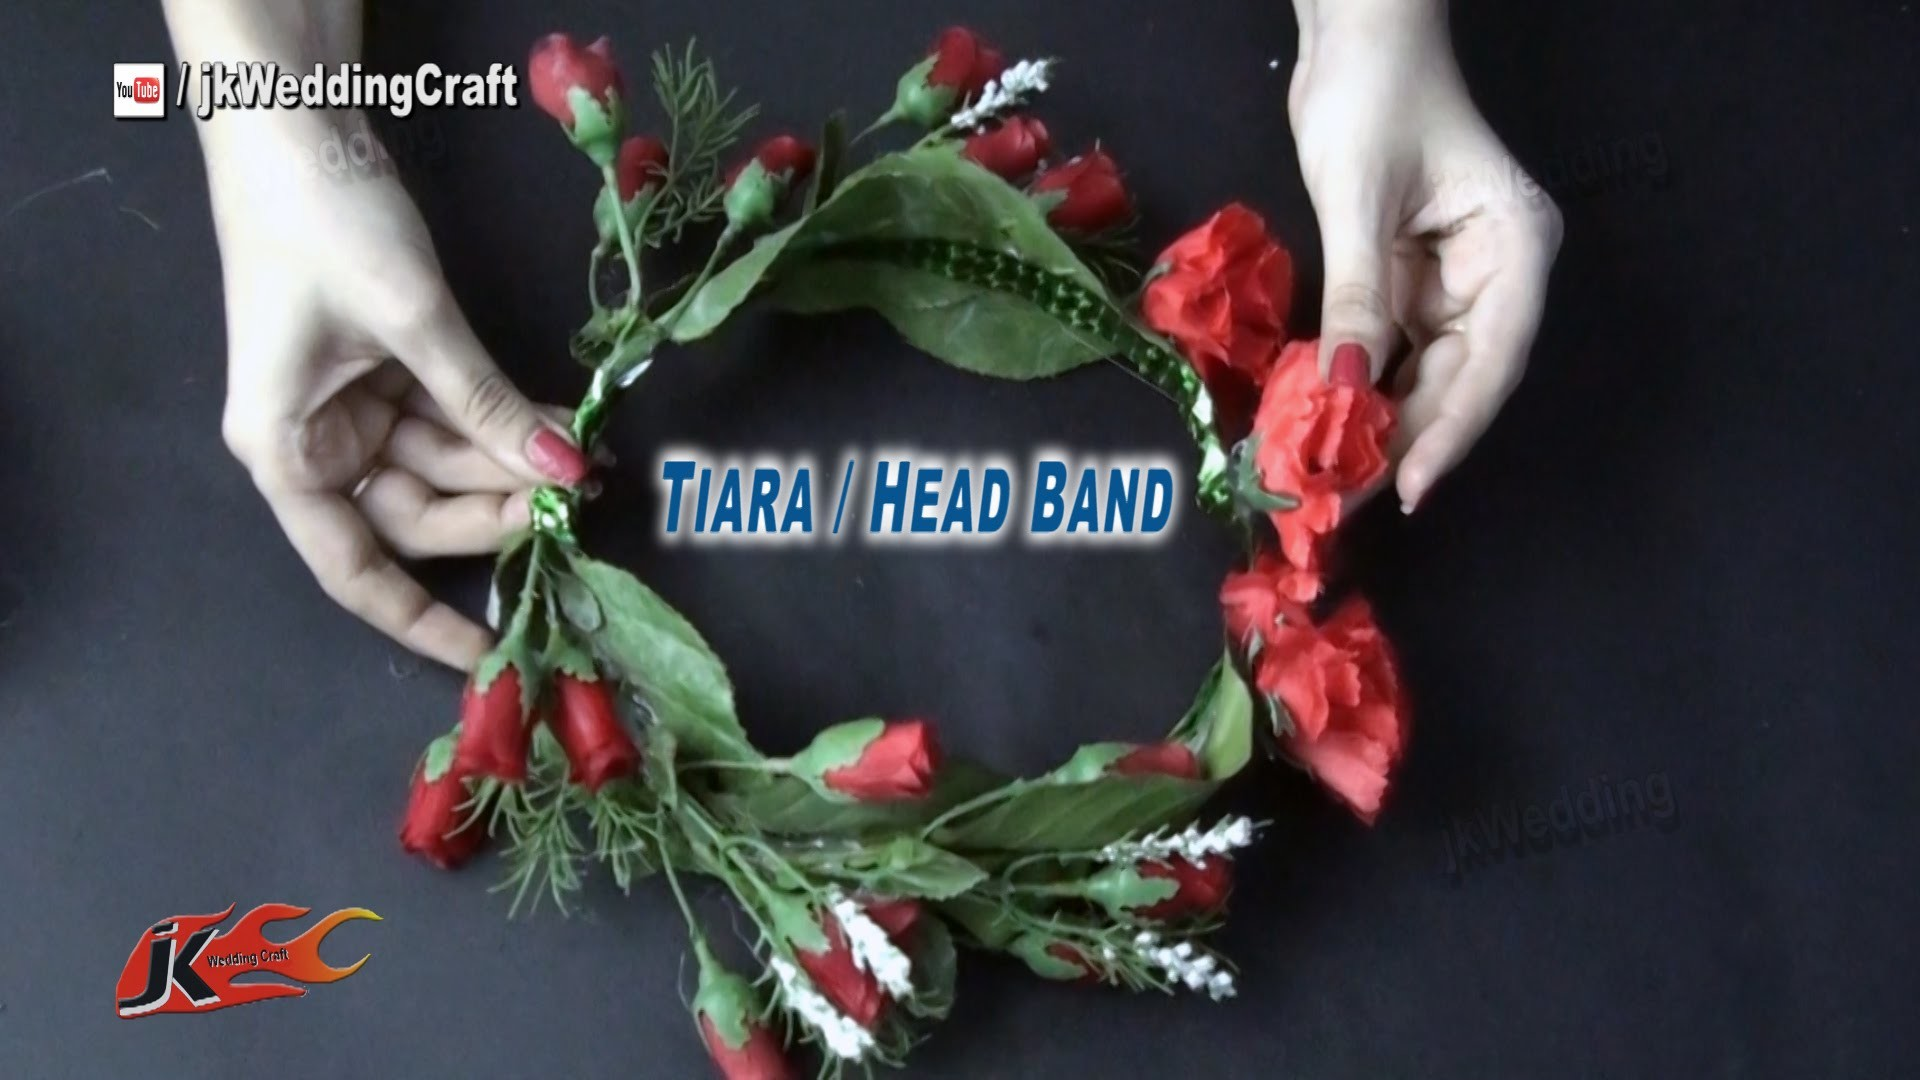 DIY Flower Tiara. crown | Wedding hair accessories | How to make - JK Wedding Craft 030